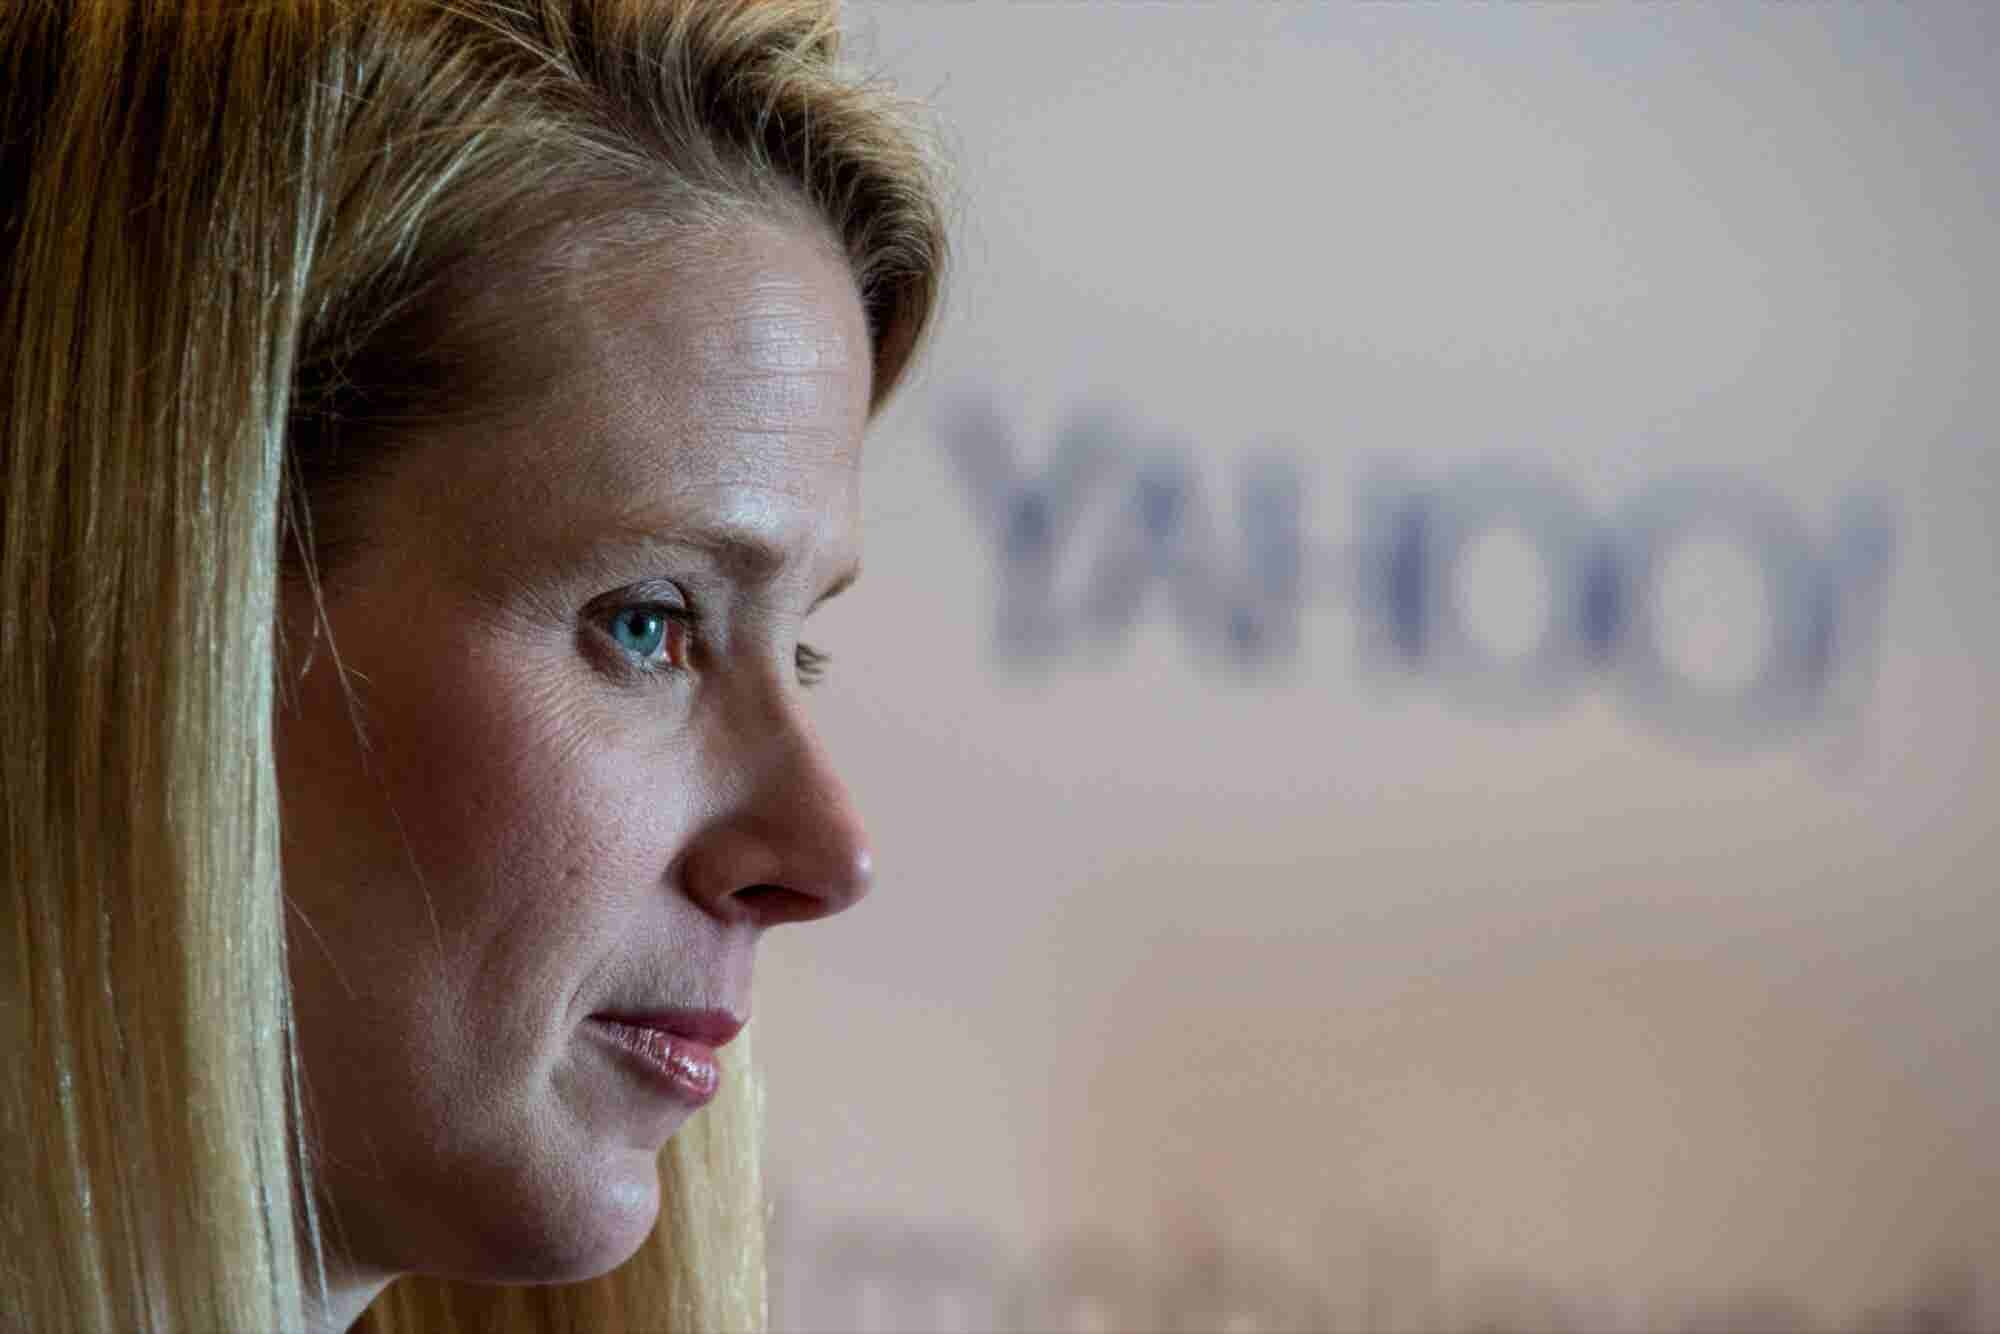 Yahoo to Change Name, Lose Marissa Mayer as Board Member